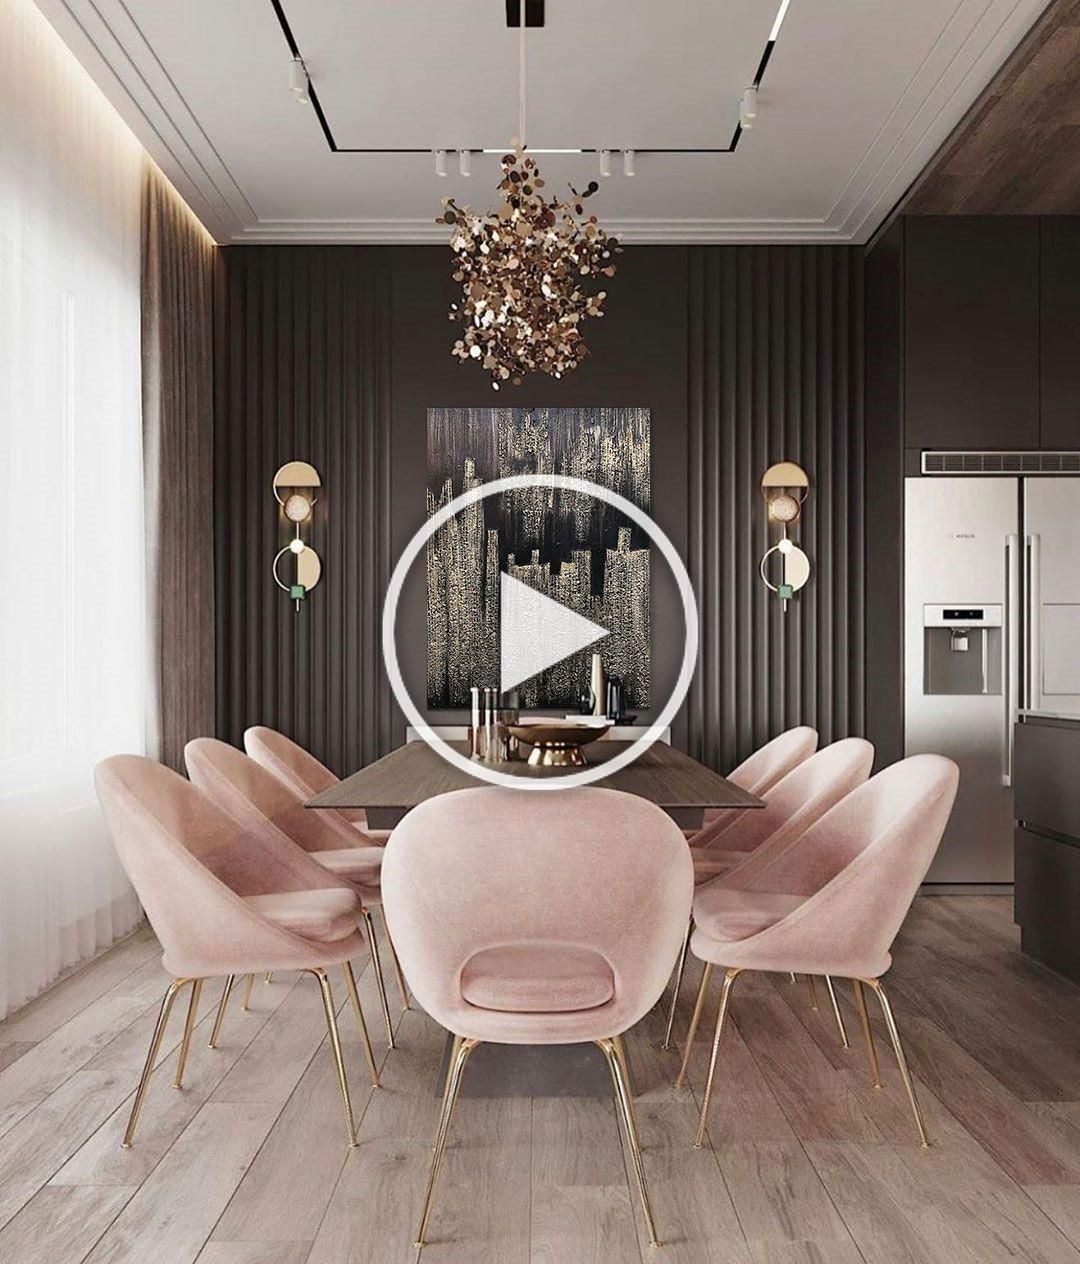 Gorgeous Luxurious Dining Room Design For Luxury Home Ideas  #décomaison Feel inspired with Covet Group | www.covetgroup.com | Visit us for: #interior #decor #moderndecor #interiordecor #modernhomes #moderninteriordesign #contemporaryinteriors #besthomestyle #livingroom #interiordesign #luxury #interiors